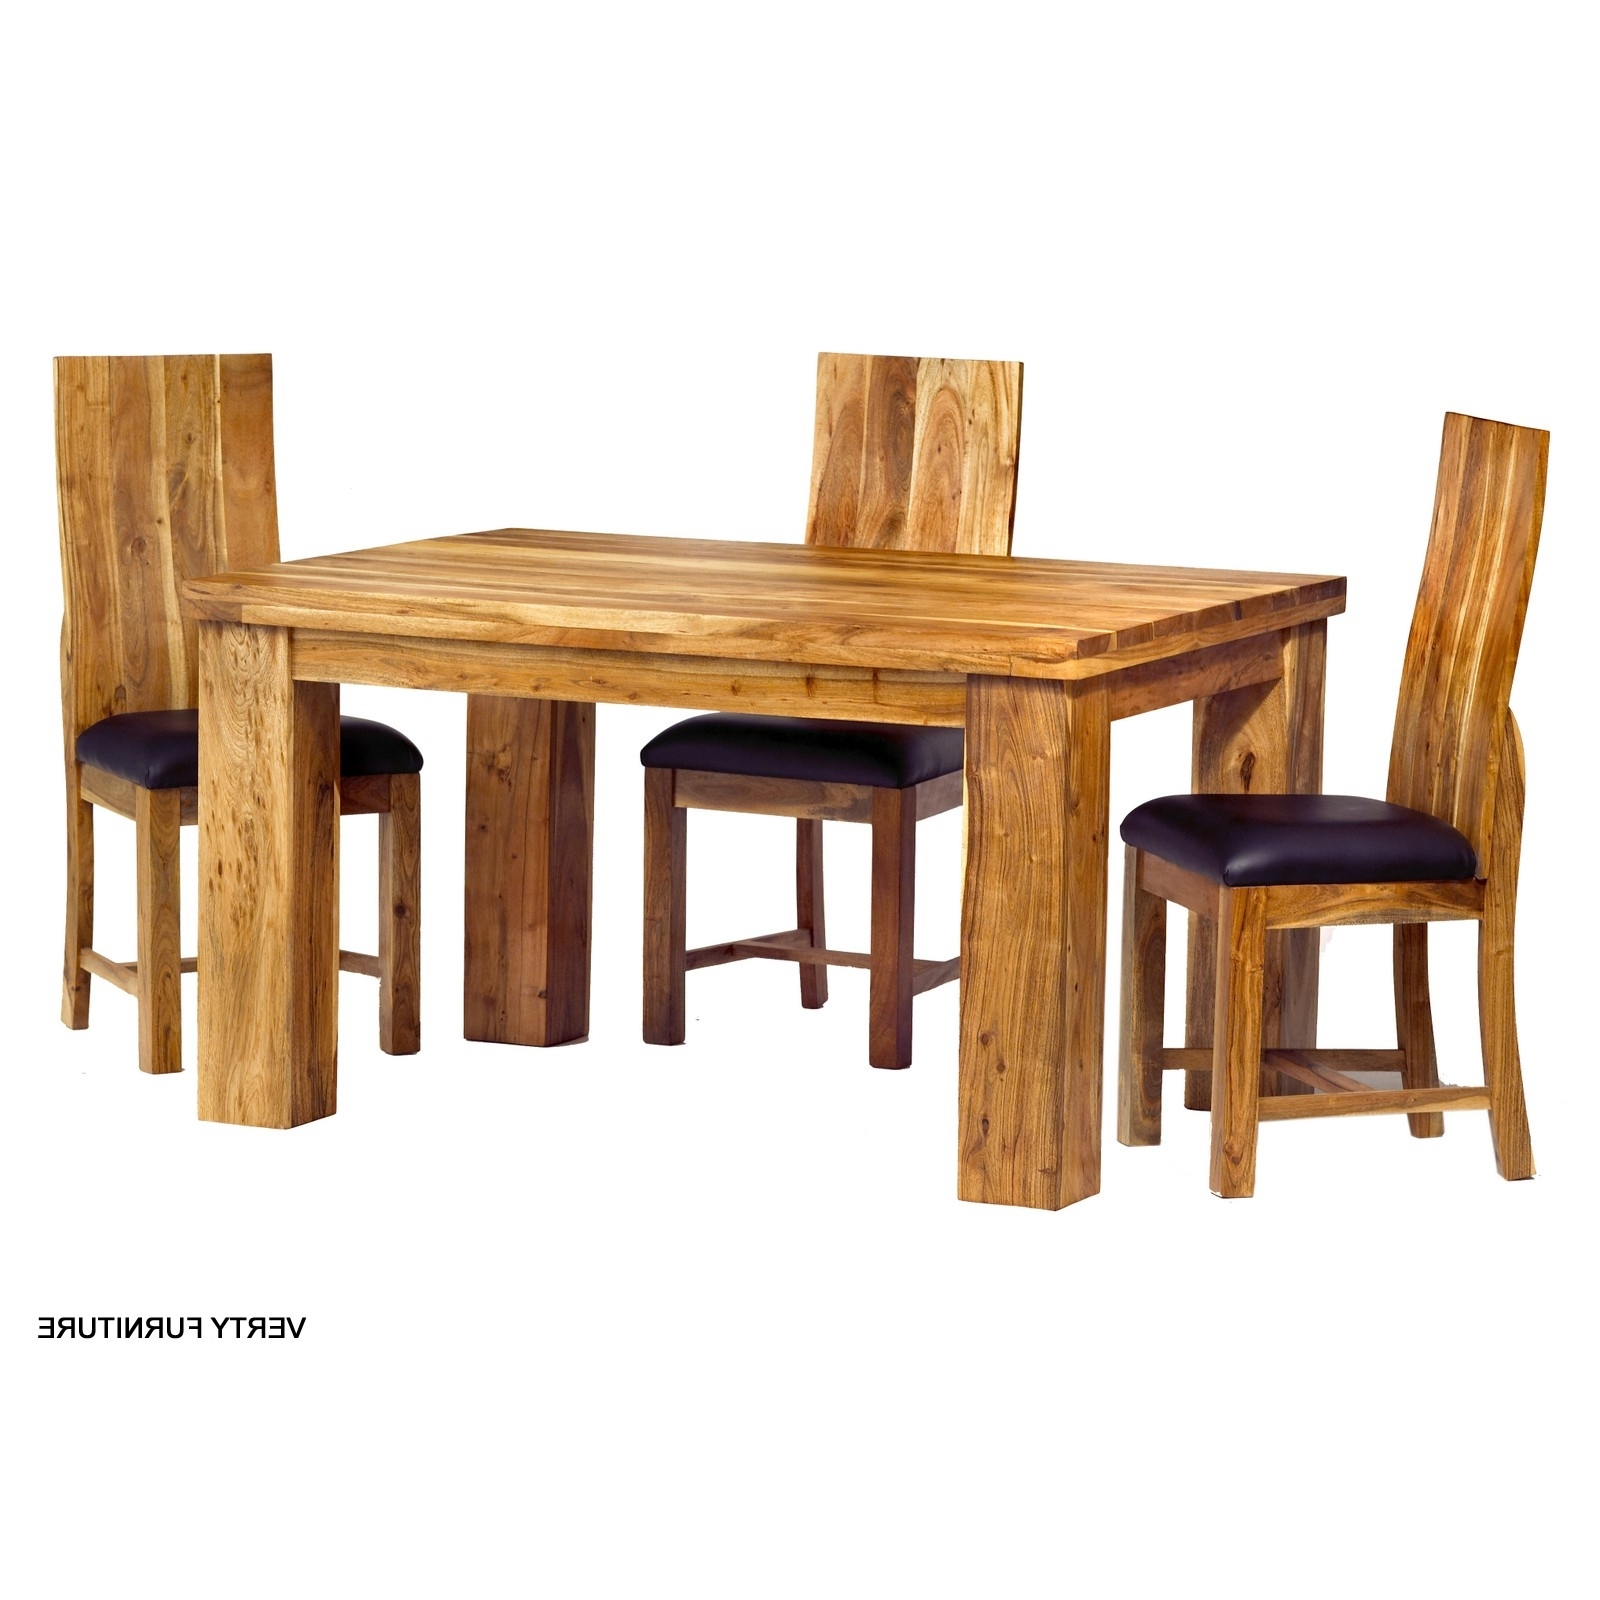 Popular Acacia Dining Table – Small With 4 Chairs – Verty Indian Furniture In Sheesham Dining Tables And 4 Chairs (View 19 of 25)